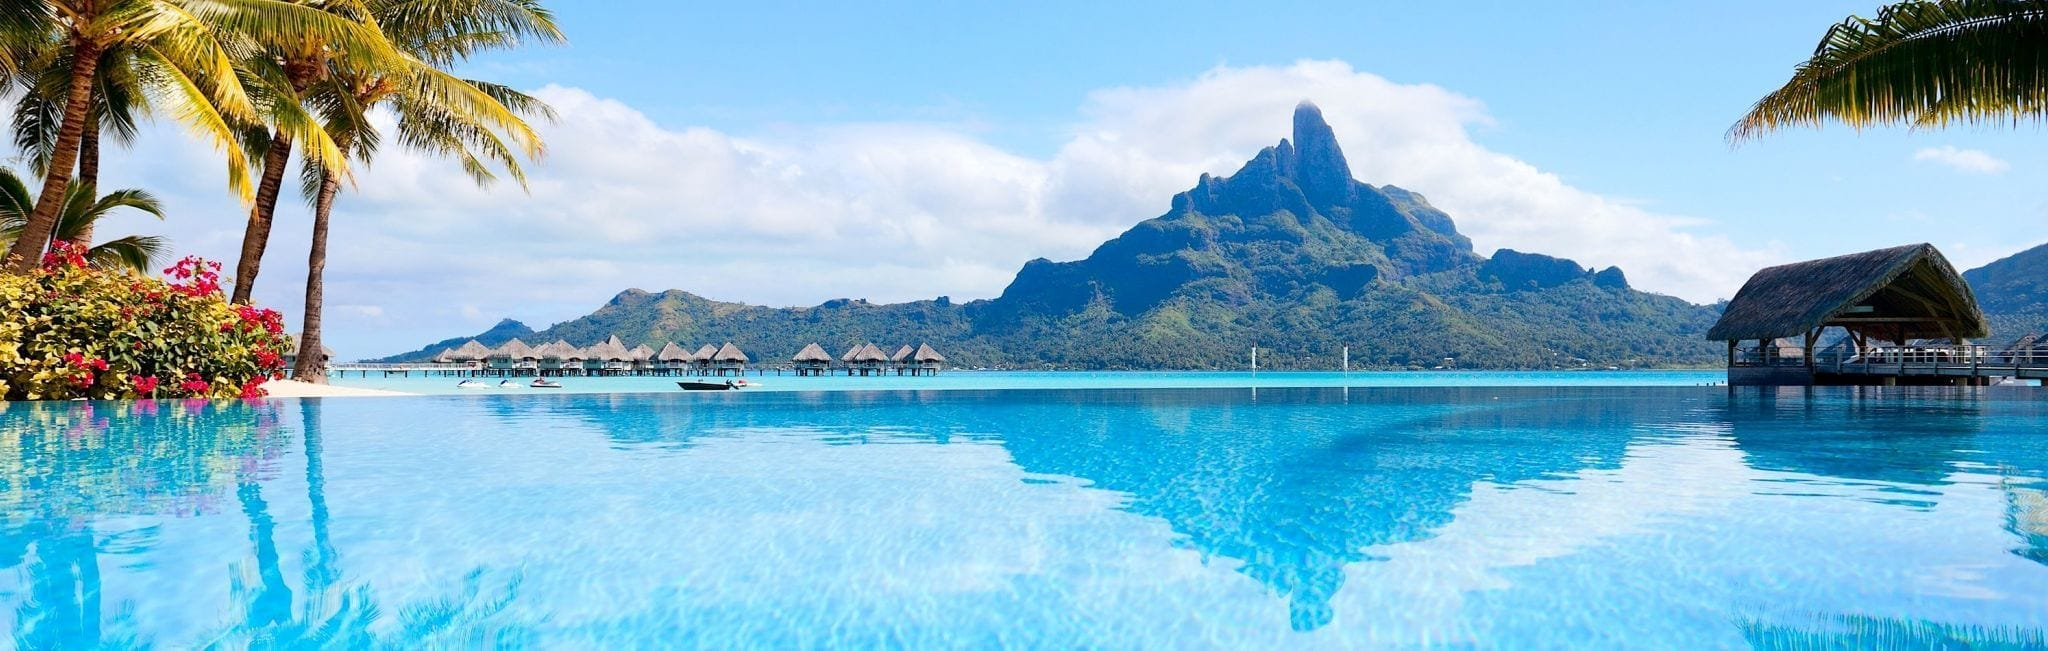 South East Asia Overwater Bungalows Tropical Honeymoon Resort